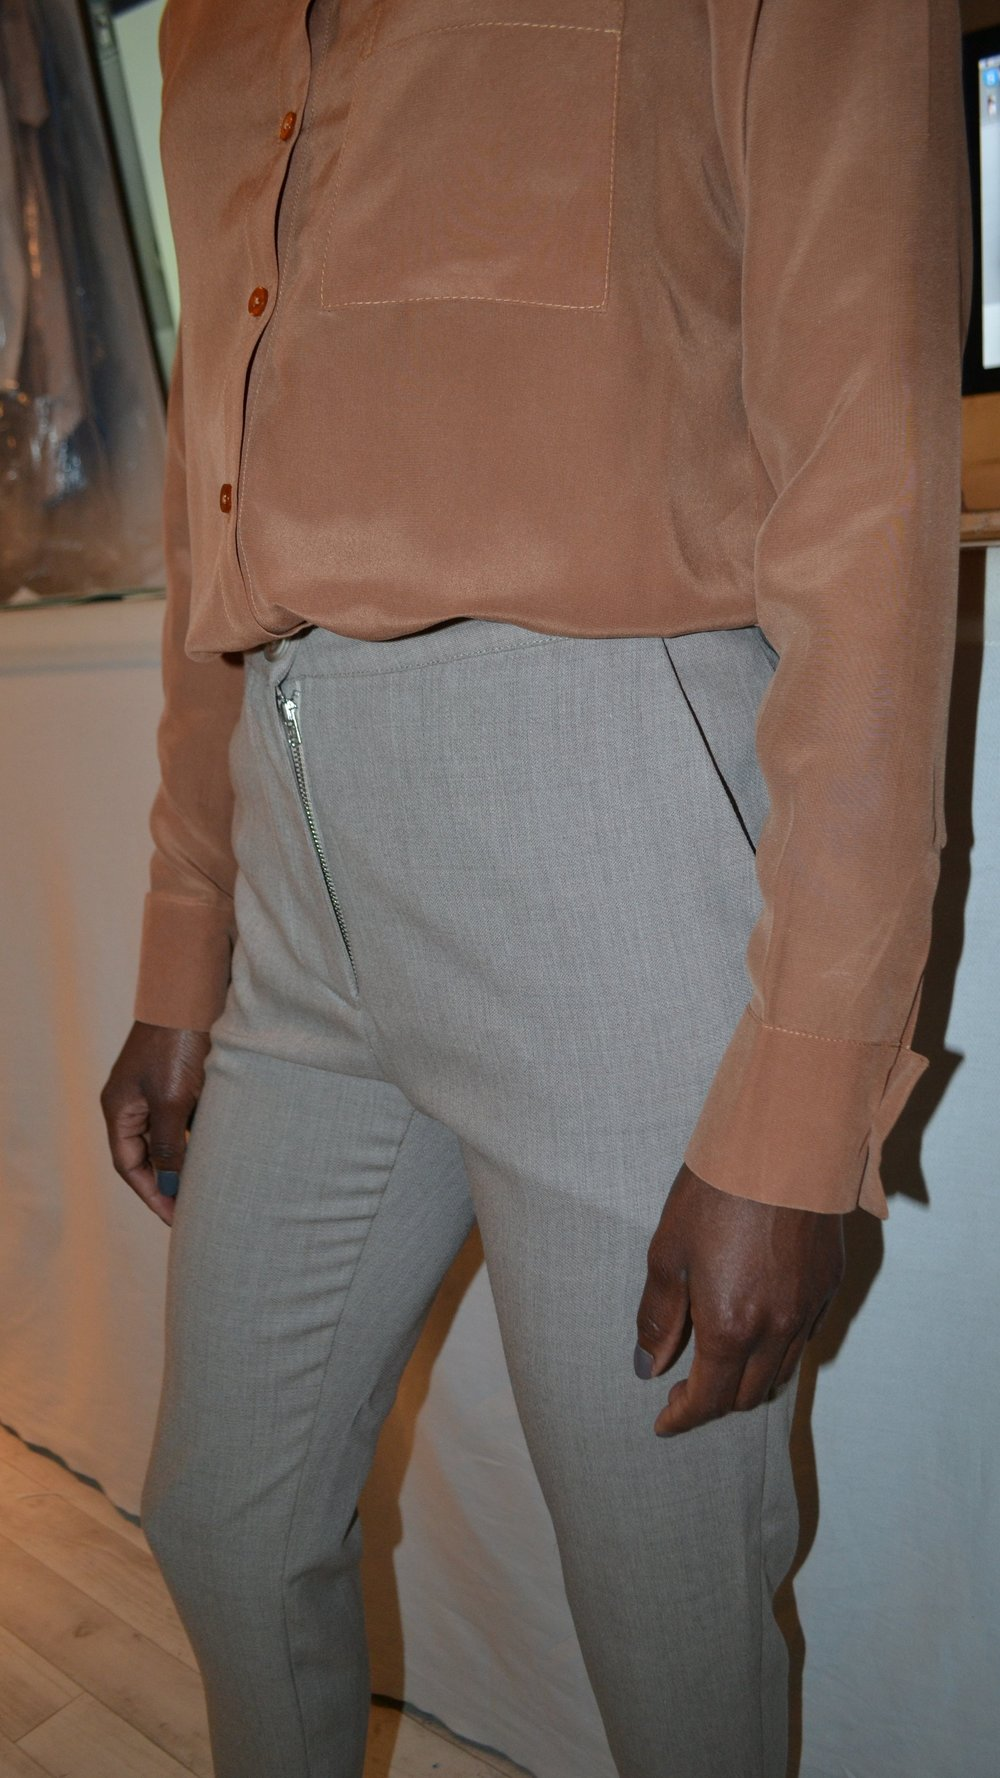 TWO CHIFFON SHIRTS & TAILORED TROUSERS                                                                                                     BESPOKE ORDER                                                                       PATTERN CUT AND SEWN BY ME. CLICK   HERE   TO SEE MORE.